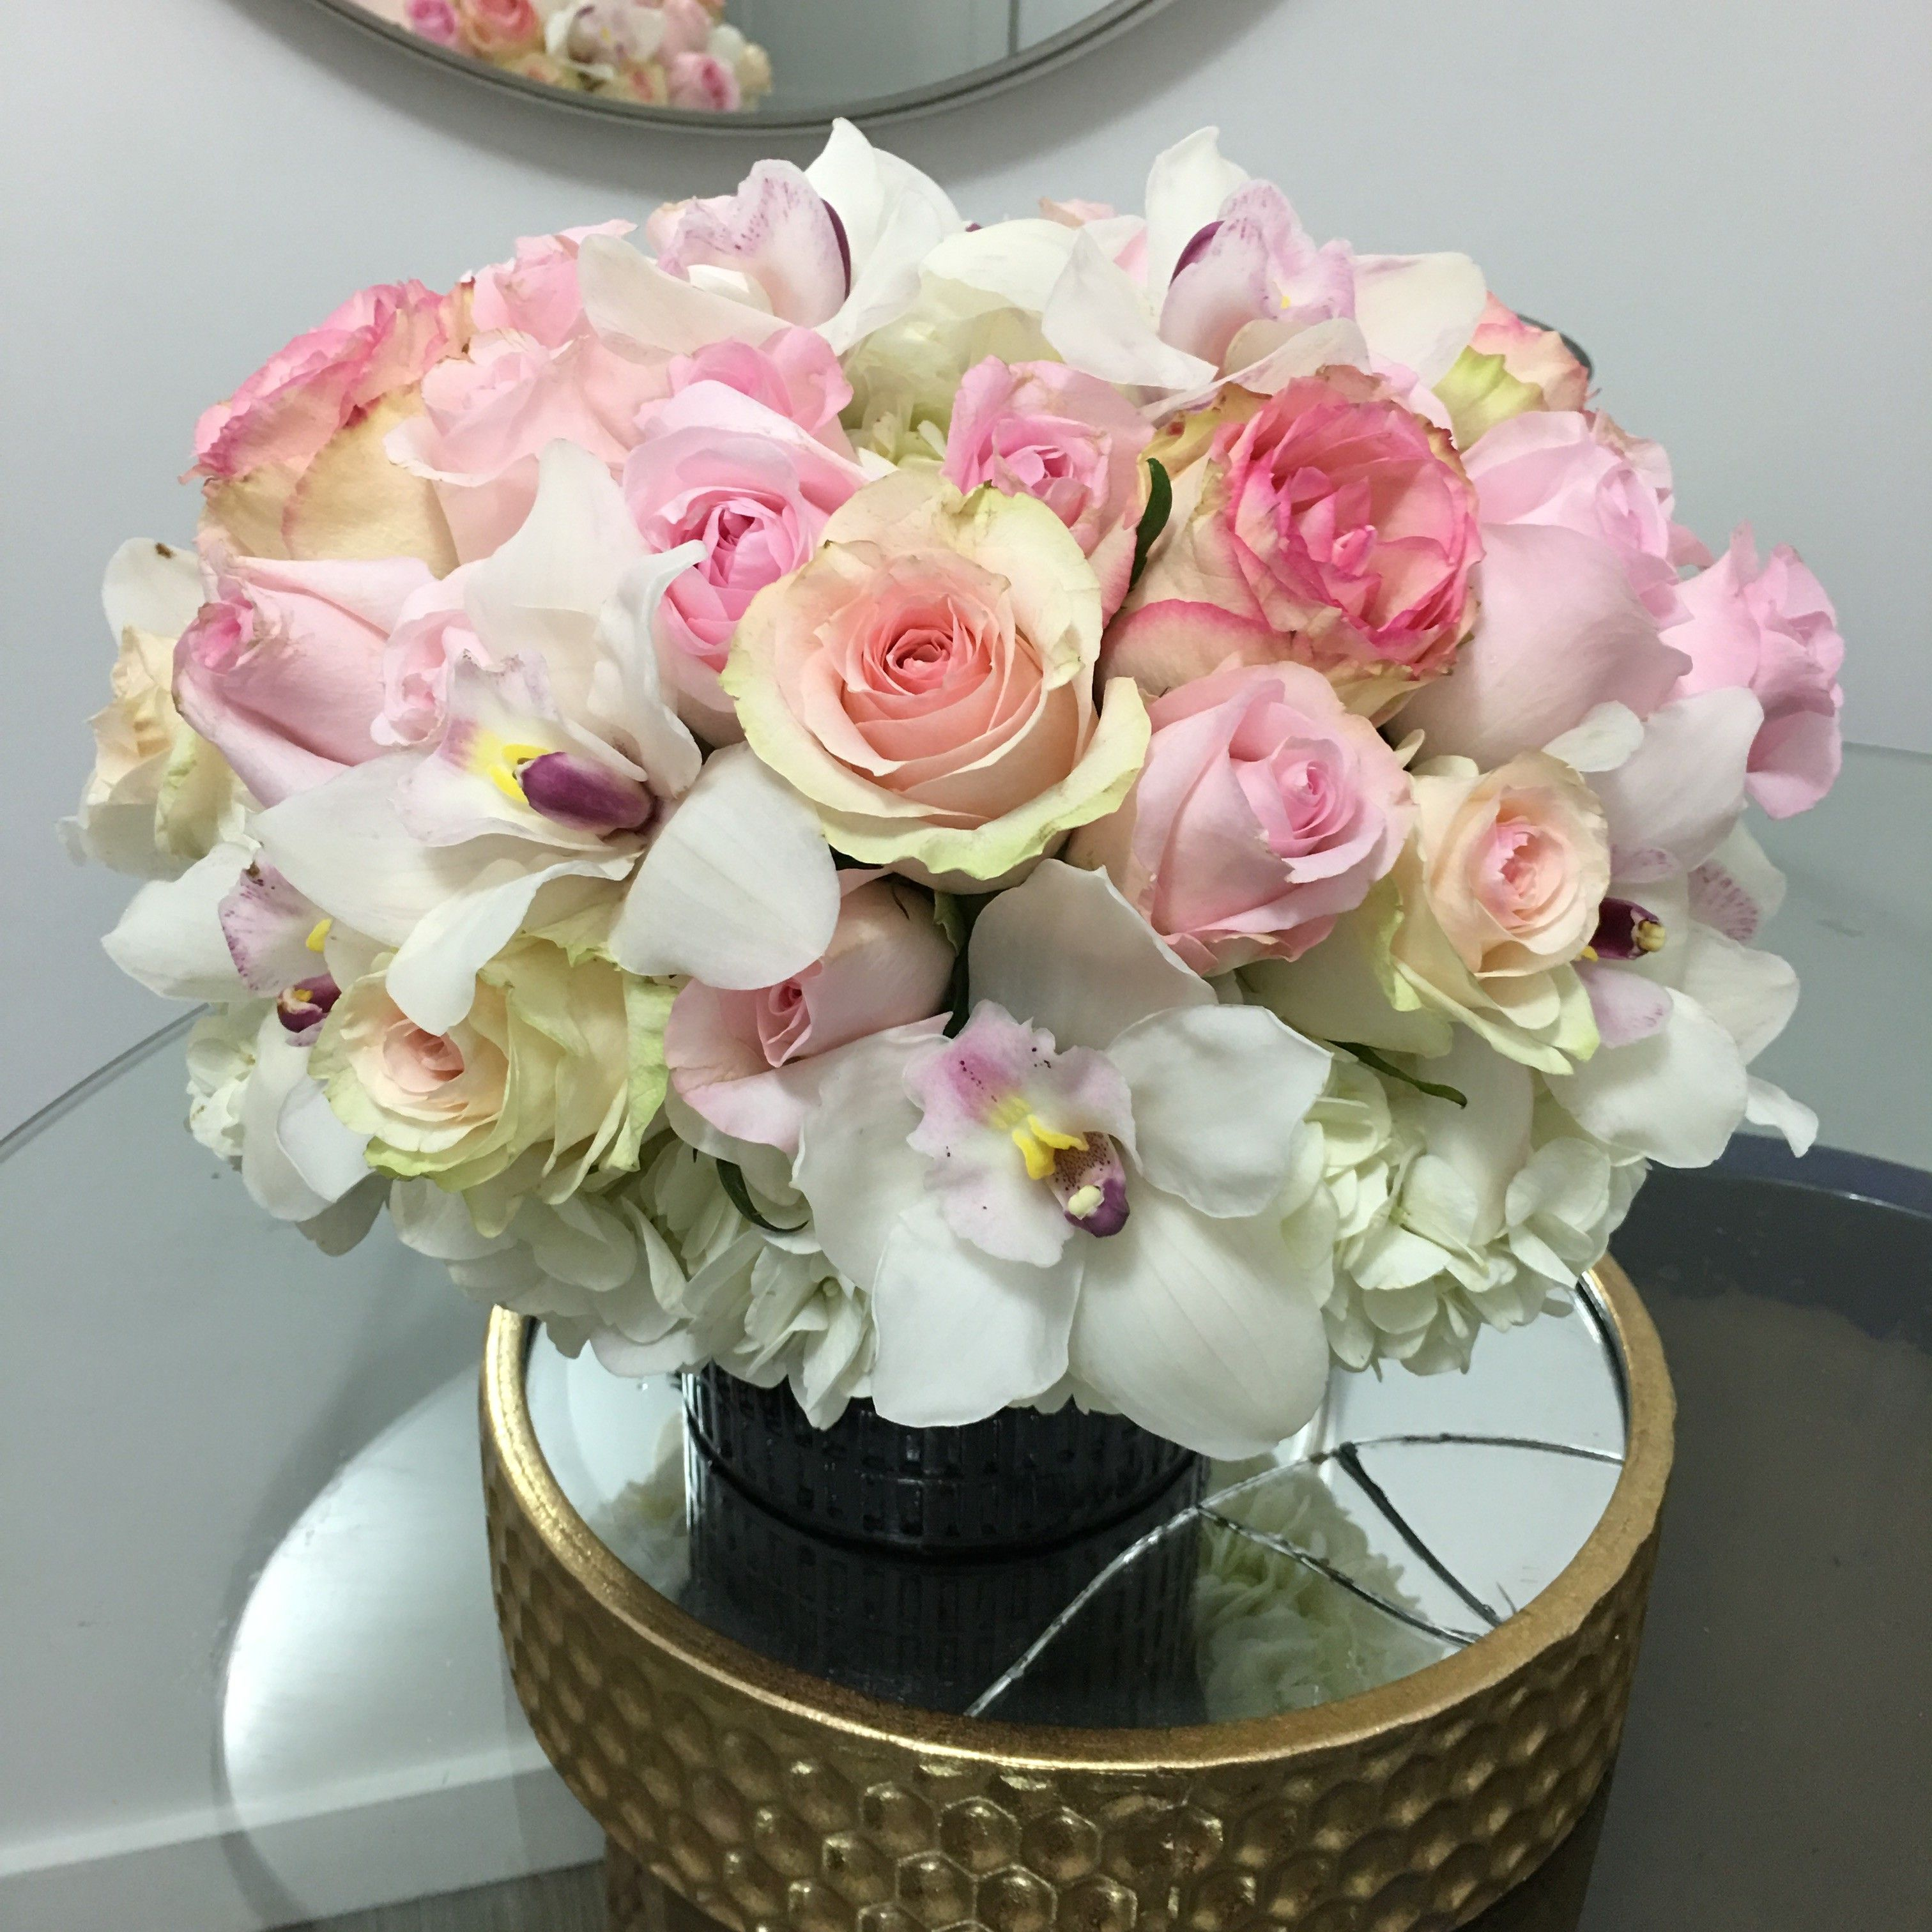 Send Softly Rose in Los Angeles, CA from LA Premier, the best florist in Los Angeles. All flowers are hand delivered and same day delivery may be available.